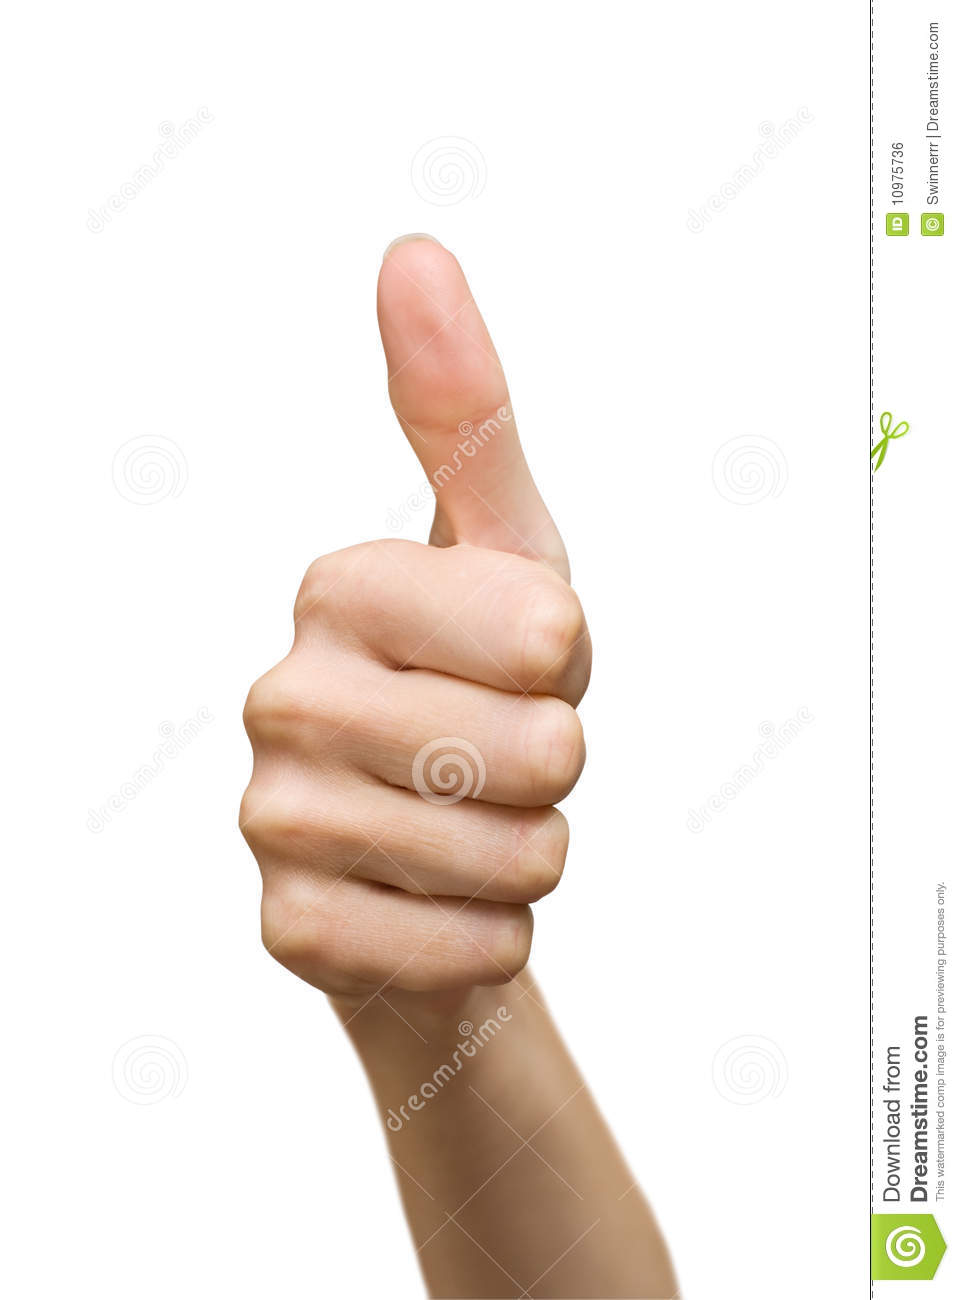 Your Priests Your Words Of Gratitude together with Stock Images Rock Festival Design Template Bass Guitar Place Text Image31550924 besides General Laboratory Equipment likewise Decoracao De Corredor besides Royalty Free Stock Image Thumbs Up Sign Image10975736. on welcome center design ideas